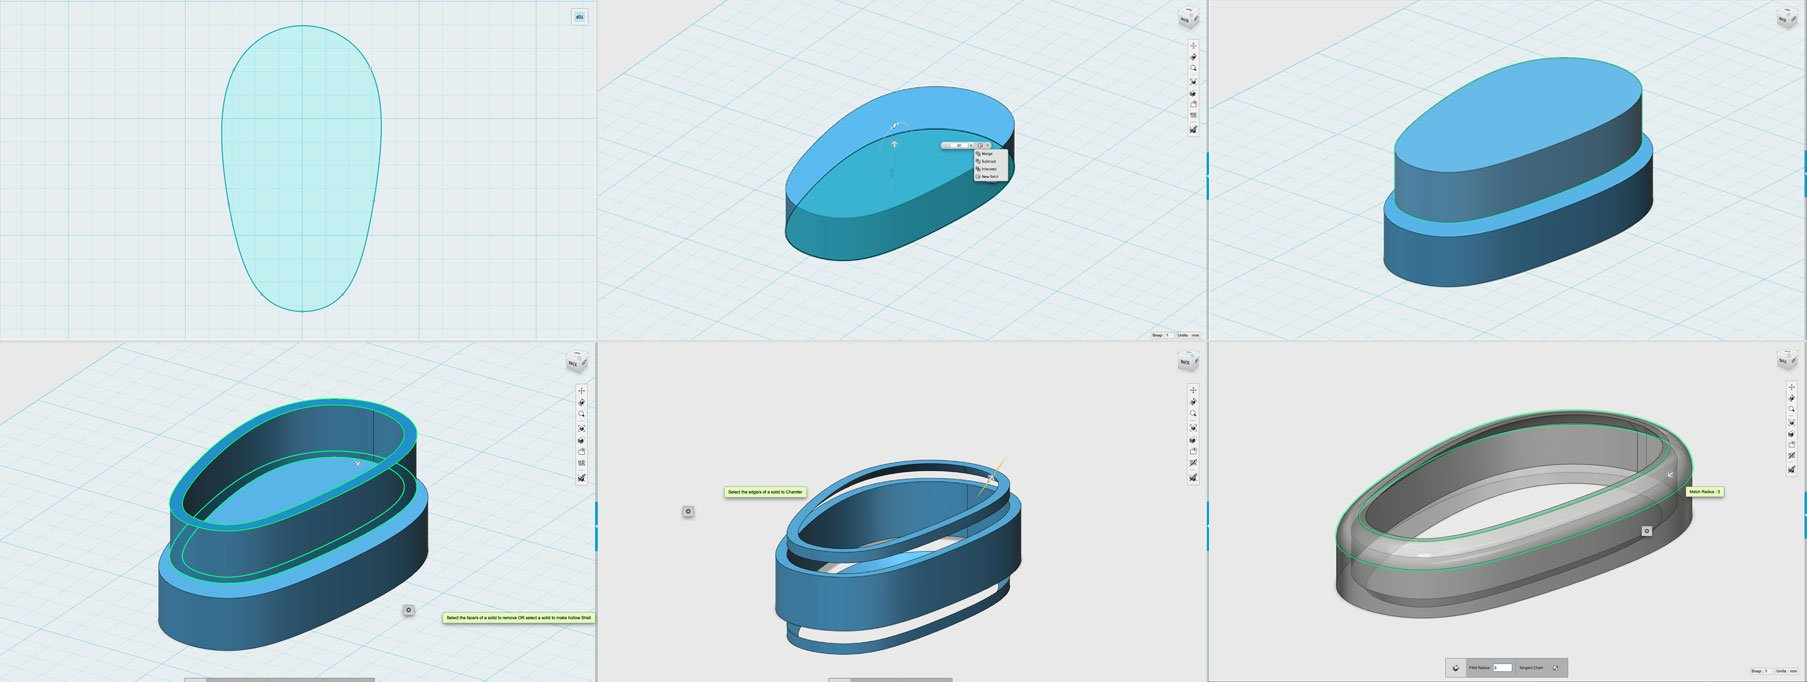 123D Design Steps to fix keychain hoop